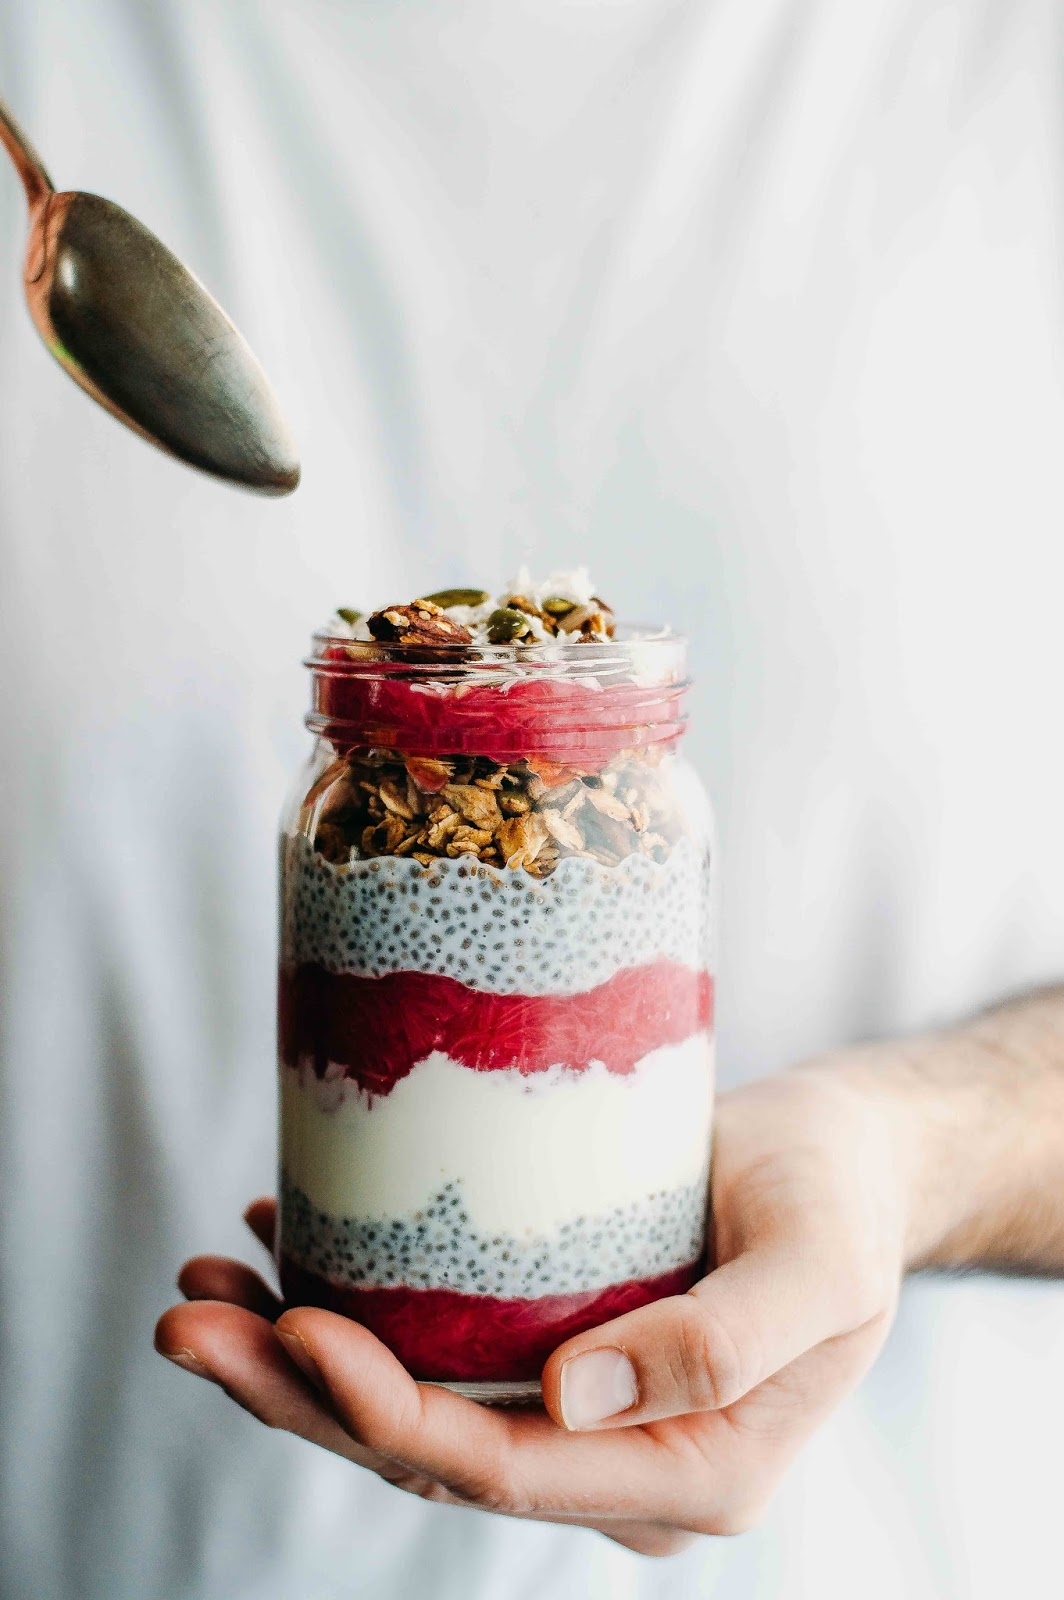 Chia and Rhubarb Breakfast Jar | https://oandrajos.blogspot.com